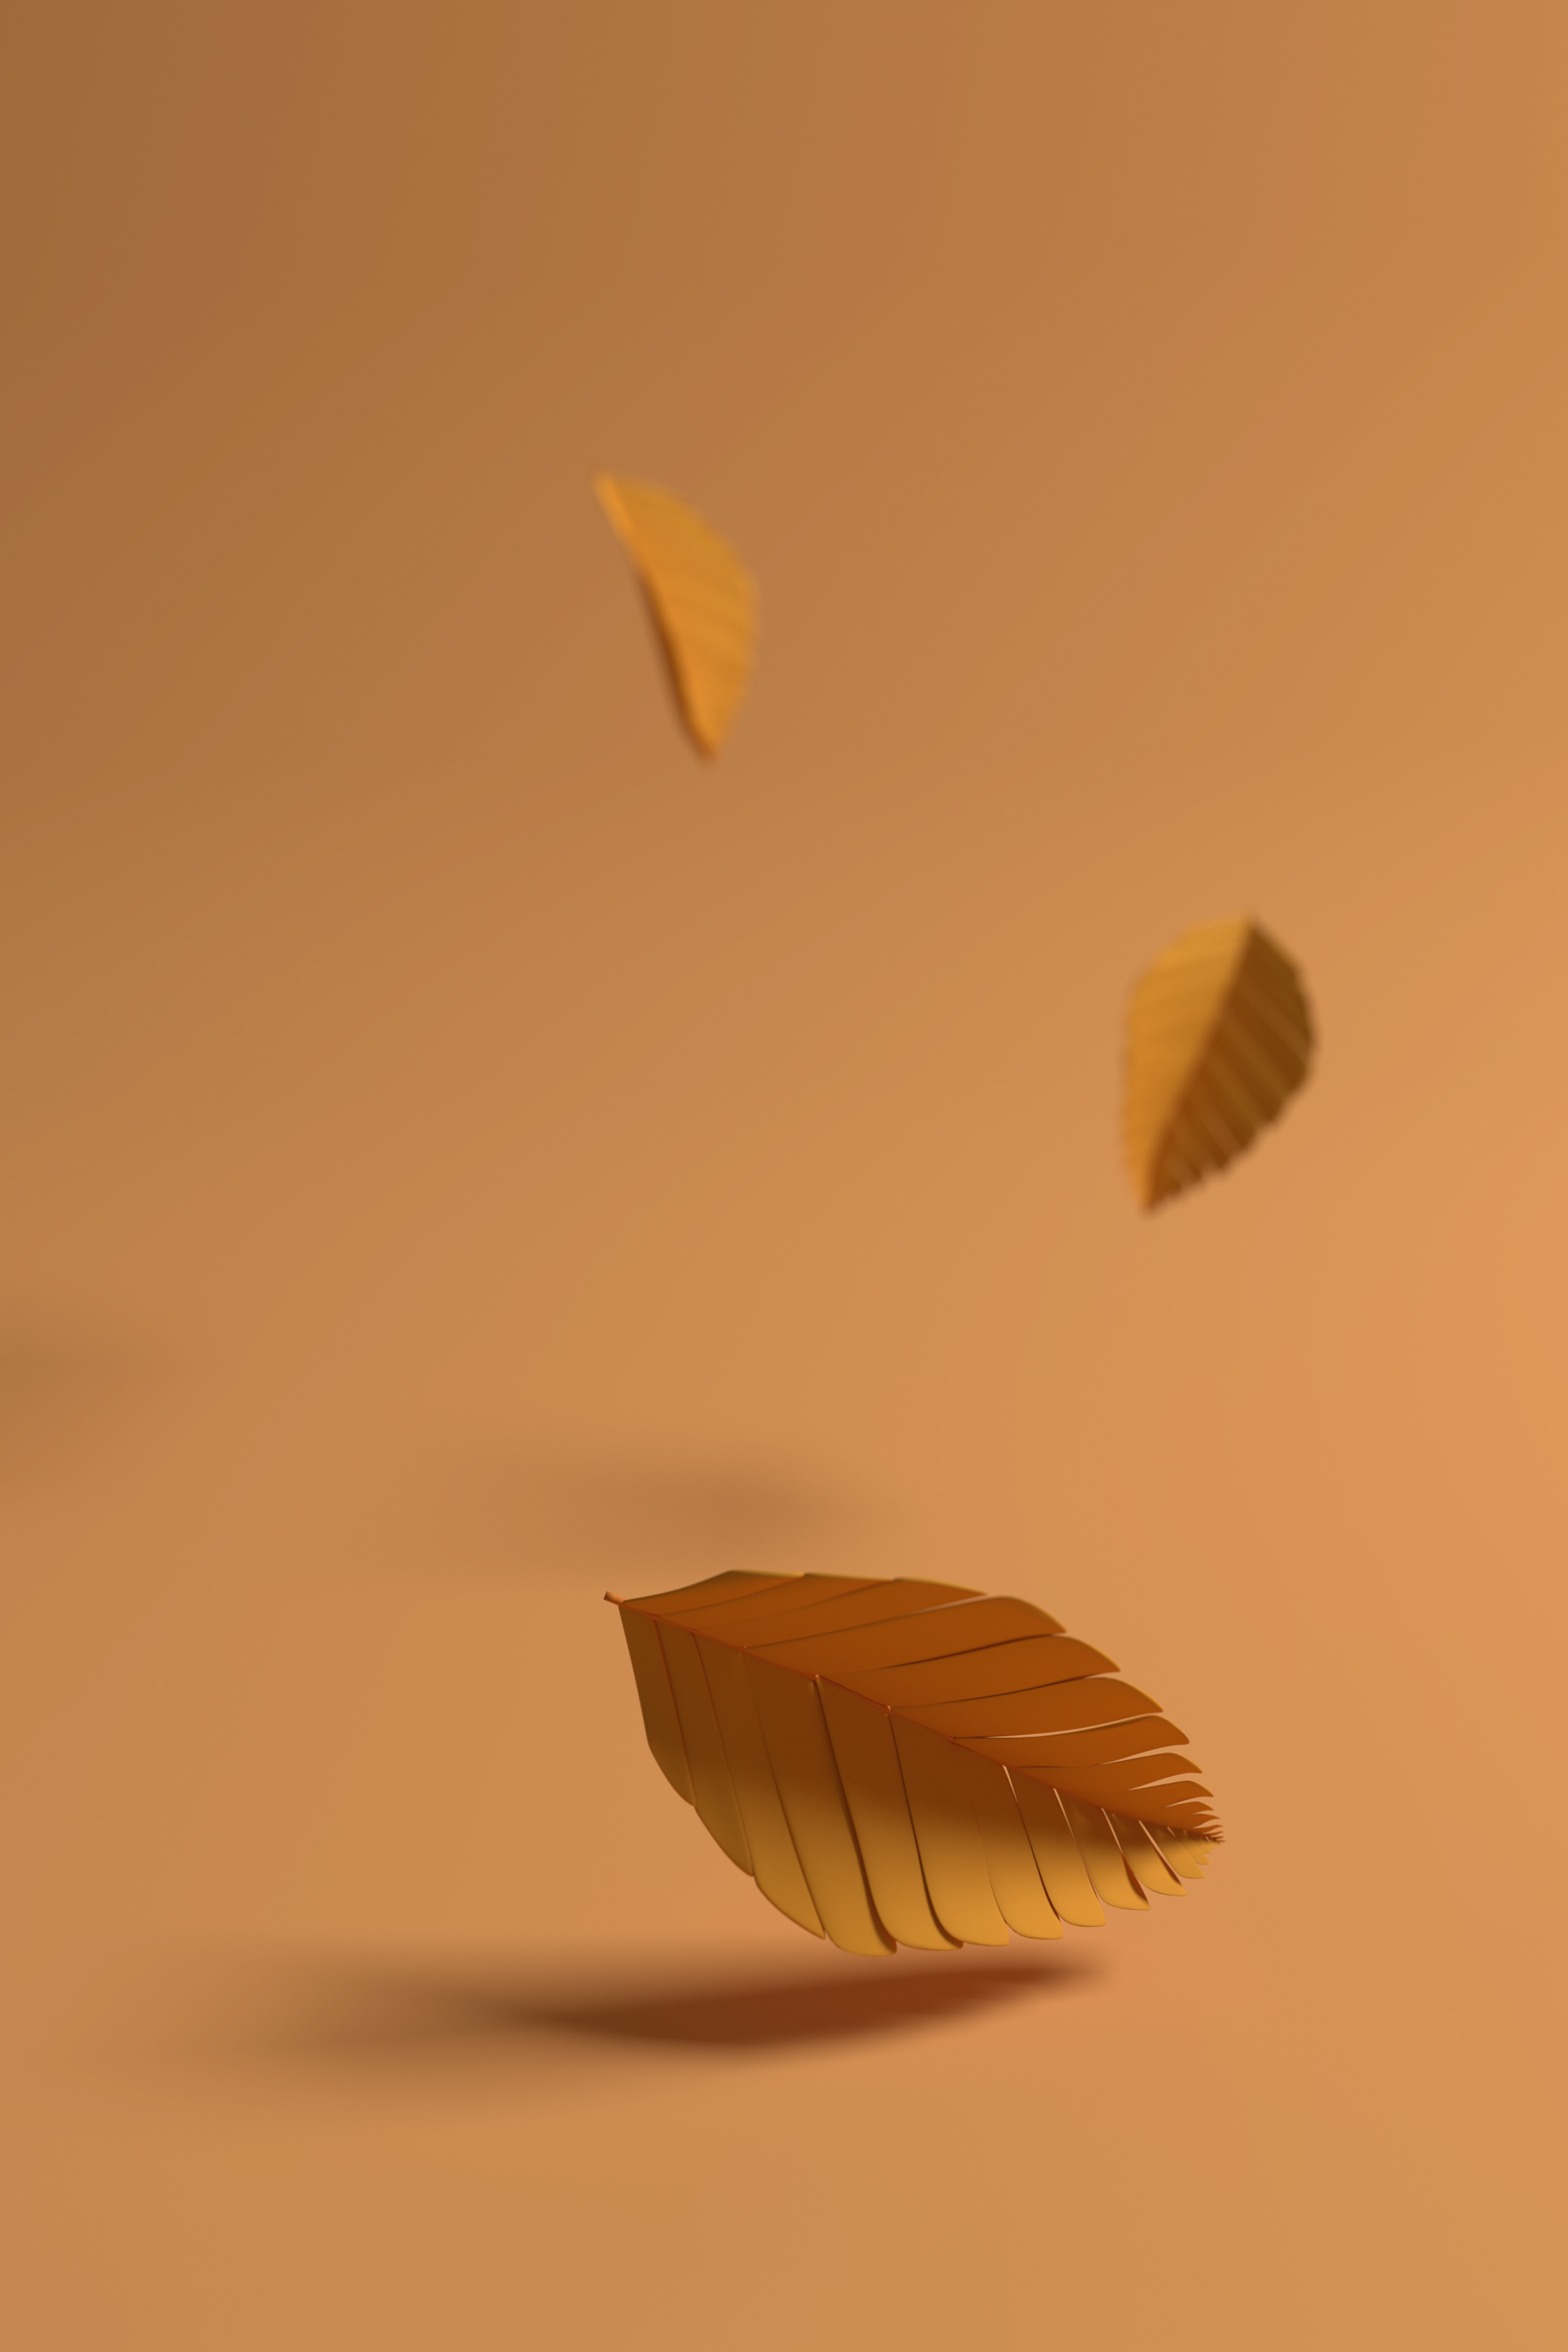 Falling leaves website.jpg